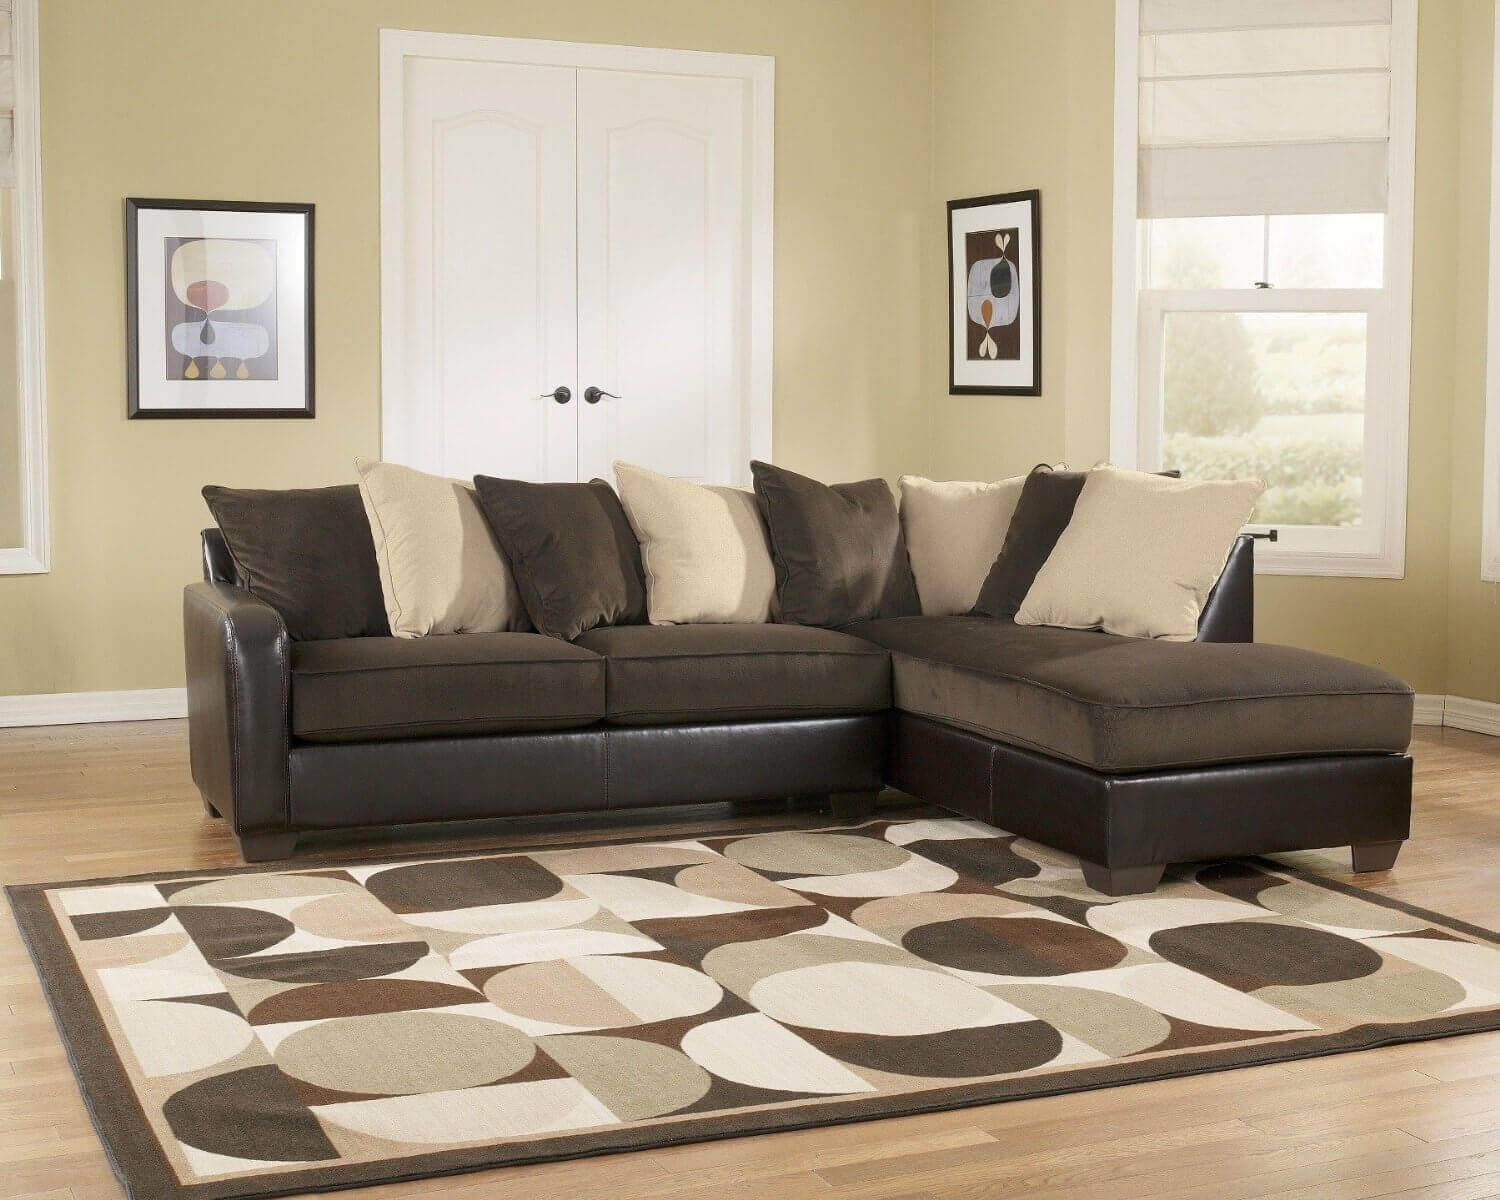 100 Beautiful Sectional Sofas Under $1,000 inside Leather And Suede Sectional Sofa (Image 1 of 25)